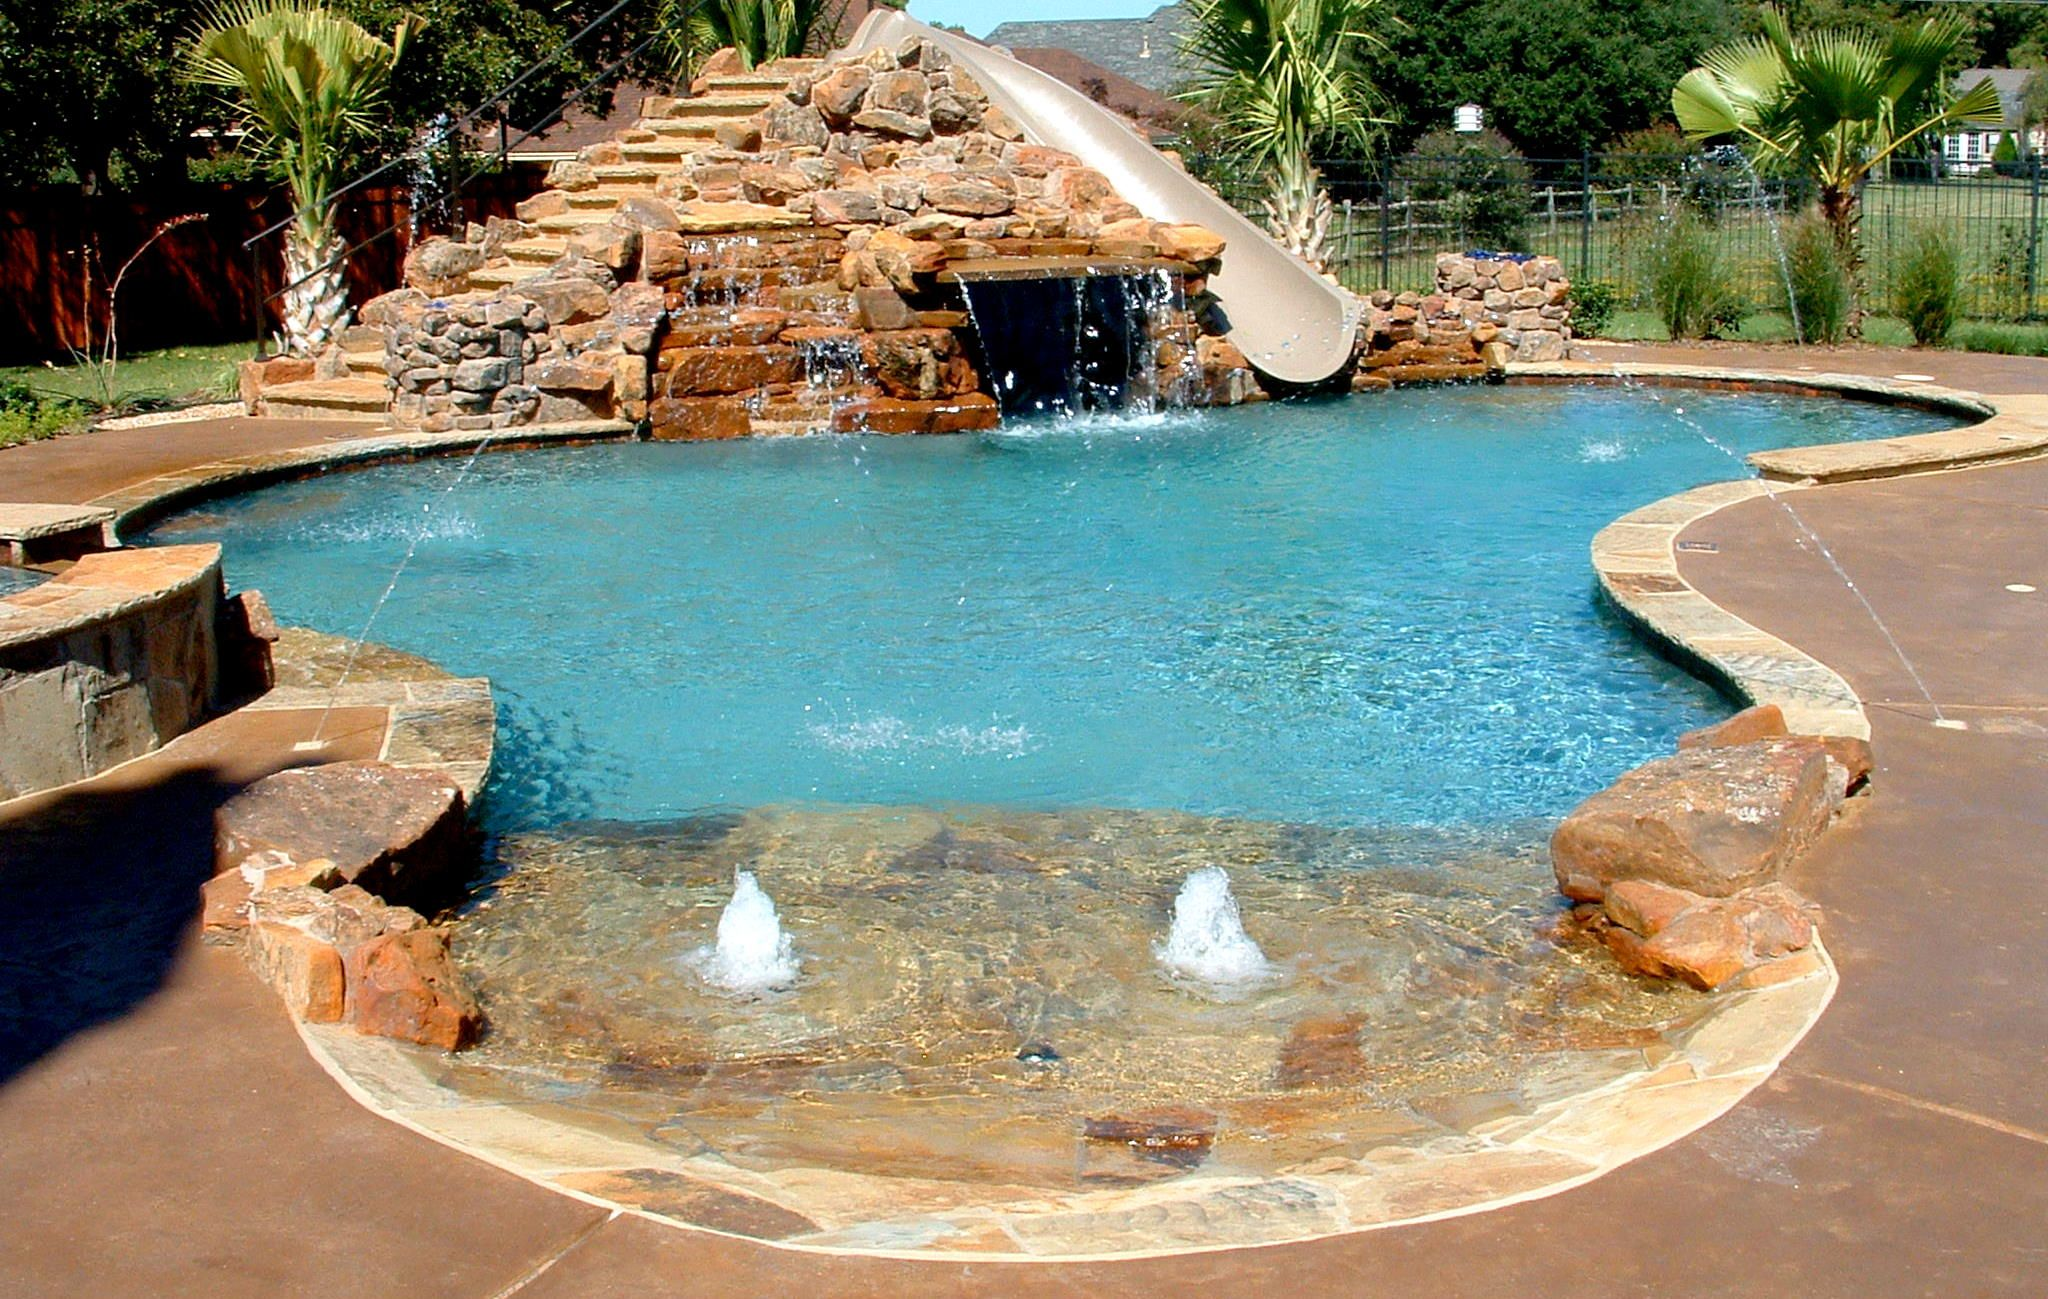 Walk In Pools Forget The Hot Tub Waterfall Feature Walk In Pool With Sun Ledge